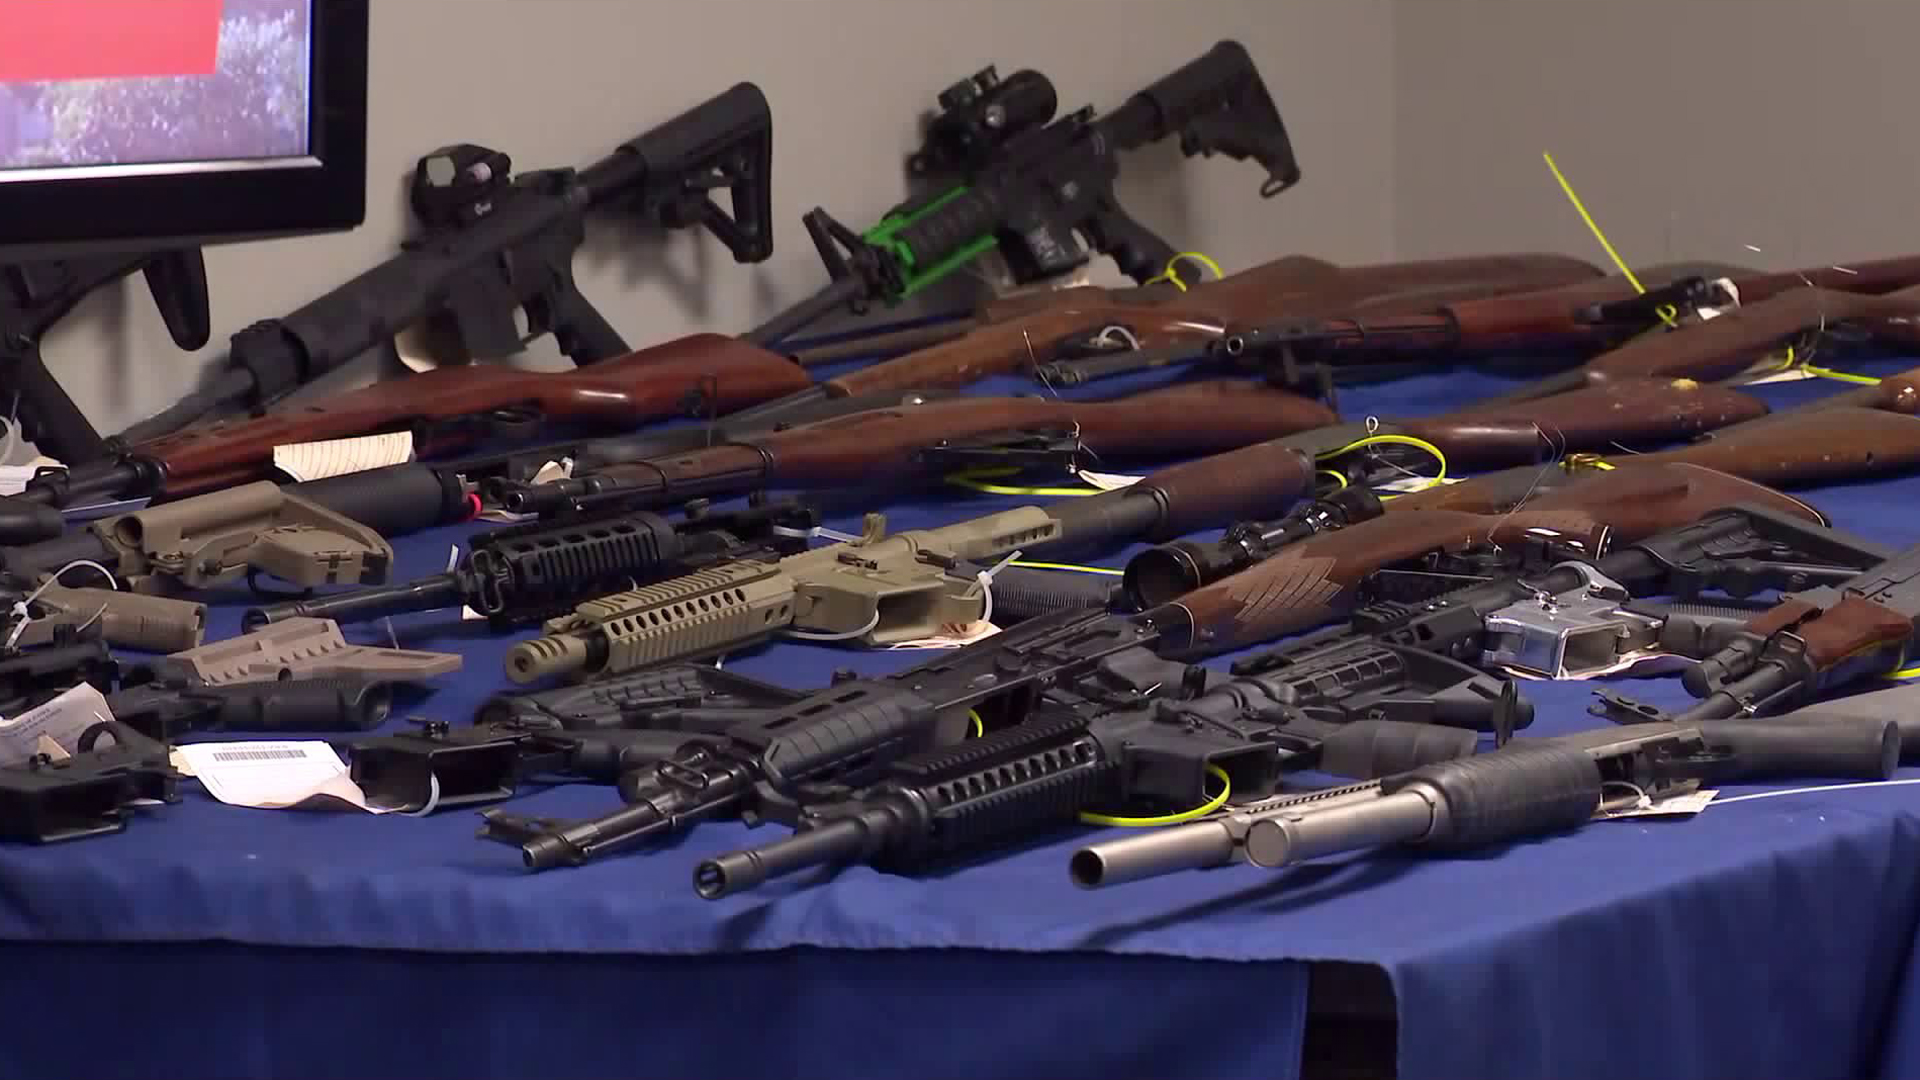 Authorities display 63 seized guns during a press conference to announce a major crackdown targeting gang members in Riverside County on Oct. 19, 2018.